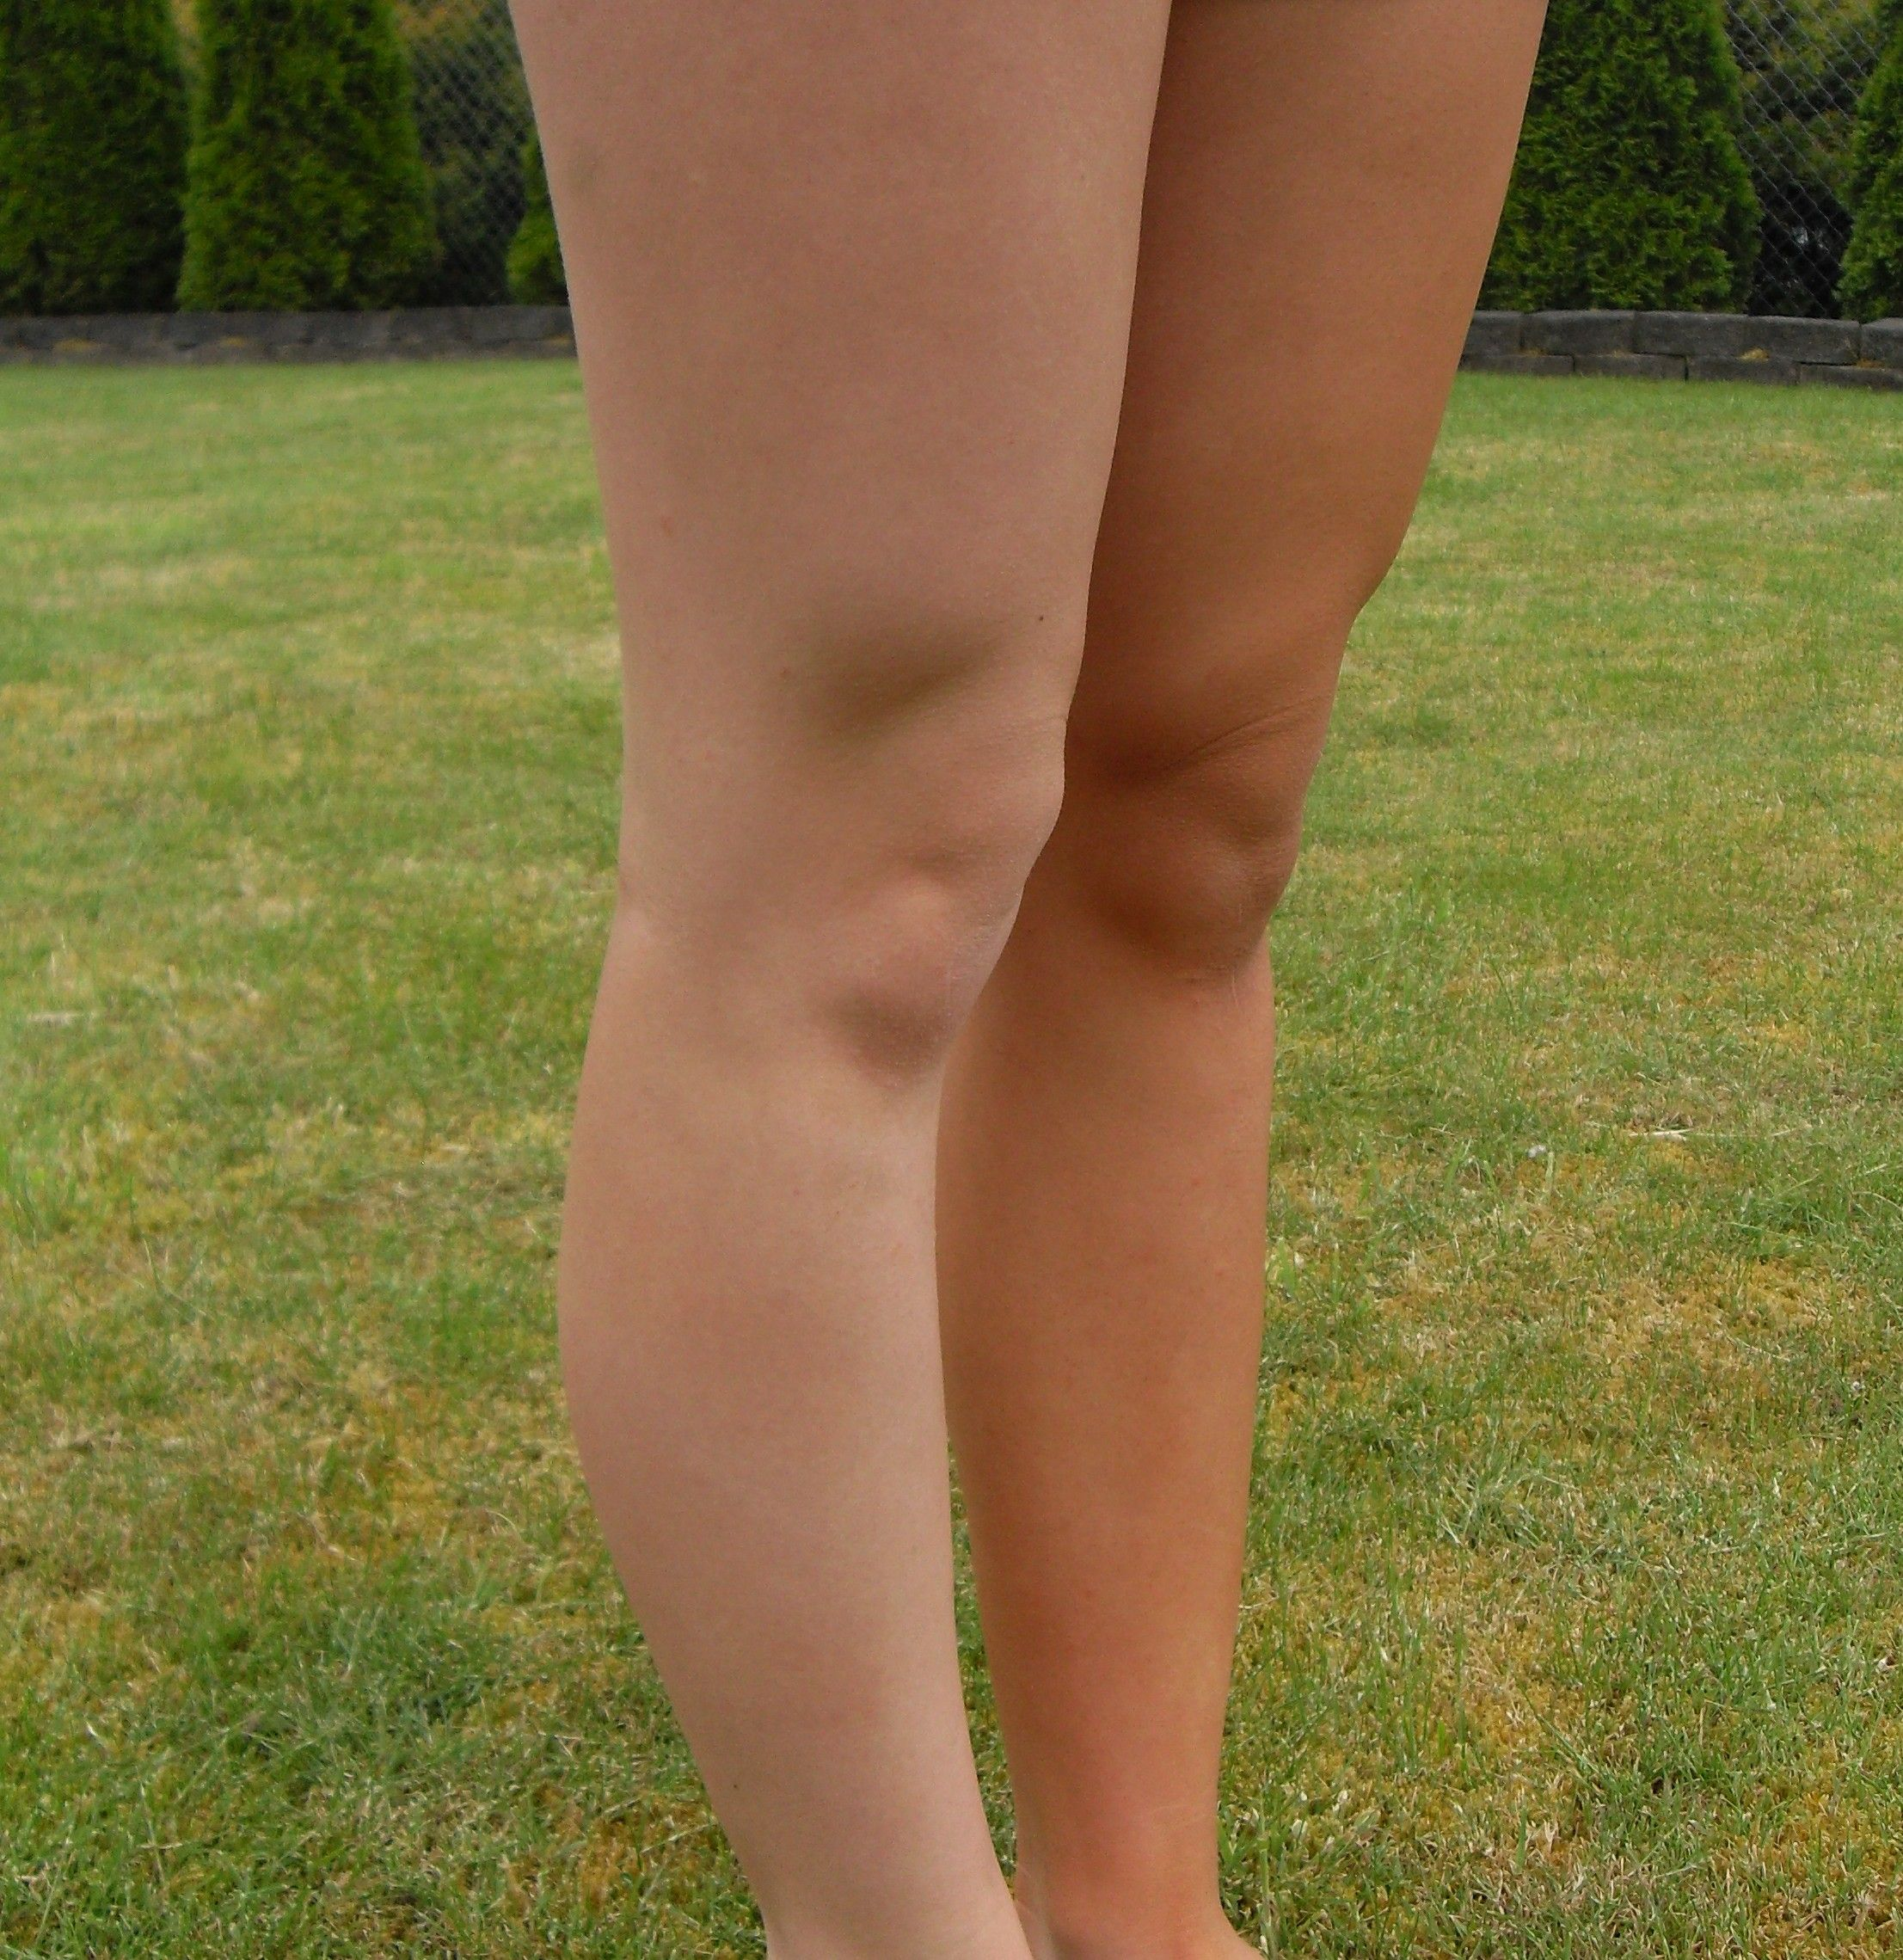 face more tanner fun leg centers tanning tan bed read